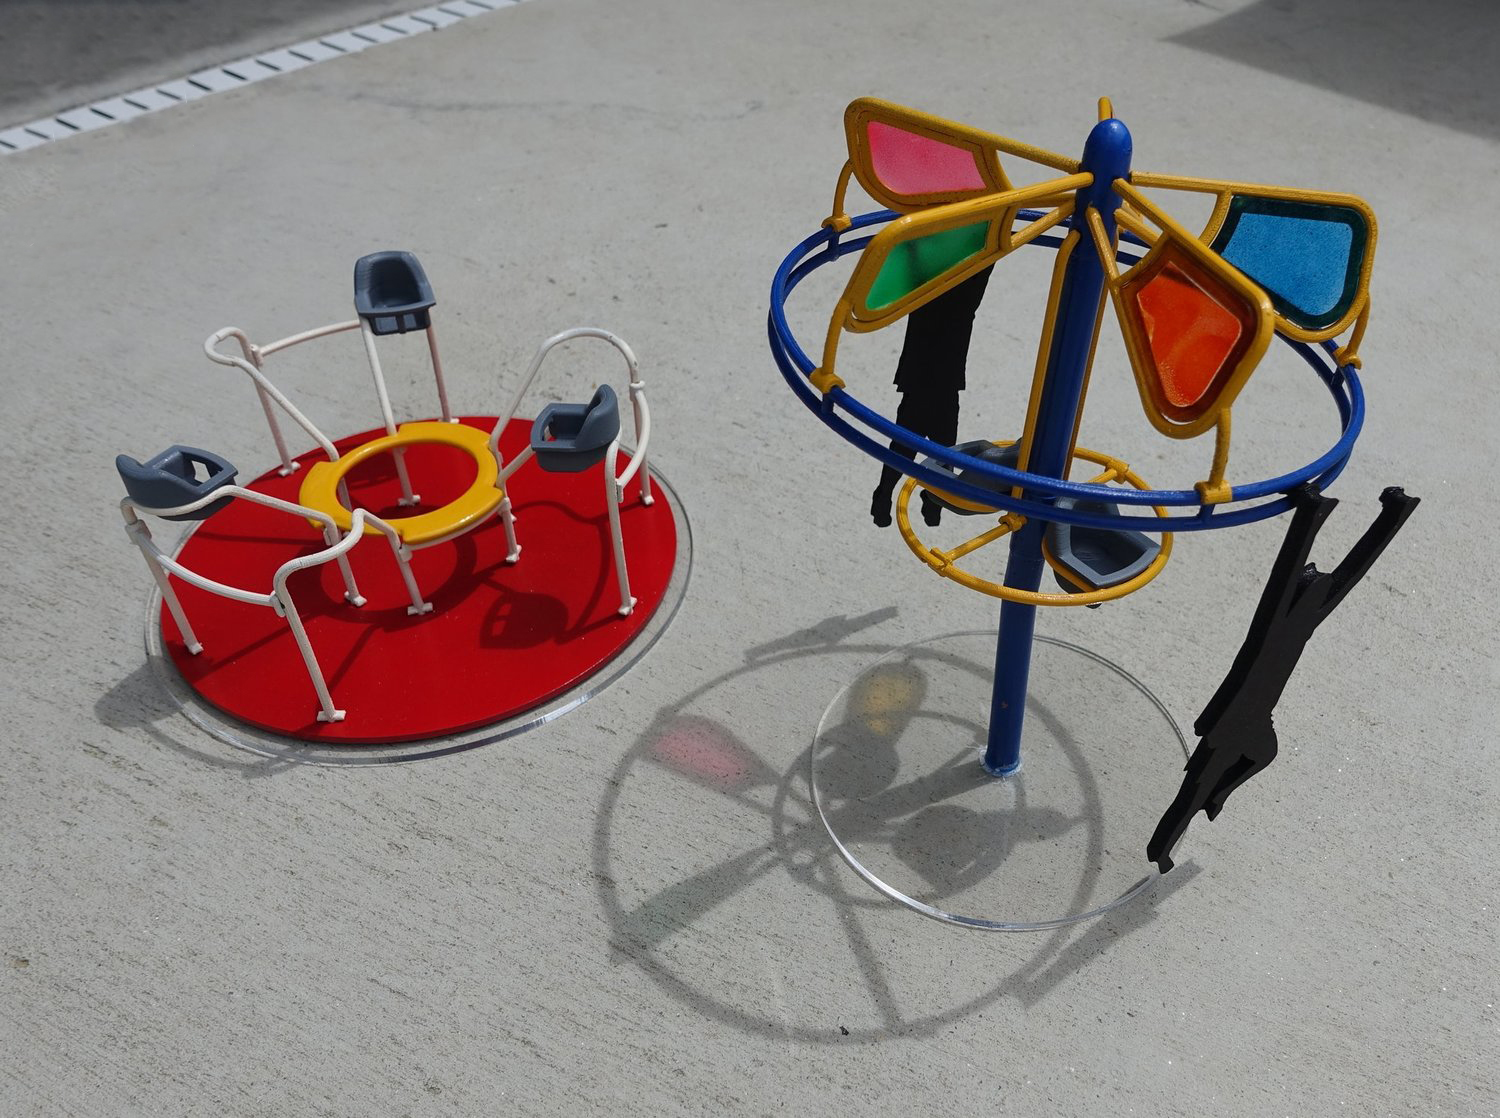 Play Equipments /   modeled in Solidworks, 3d printed;  sponsored project